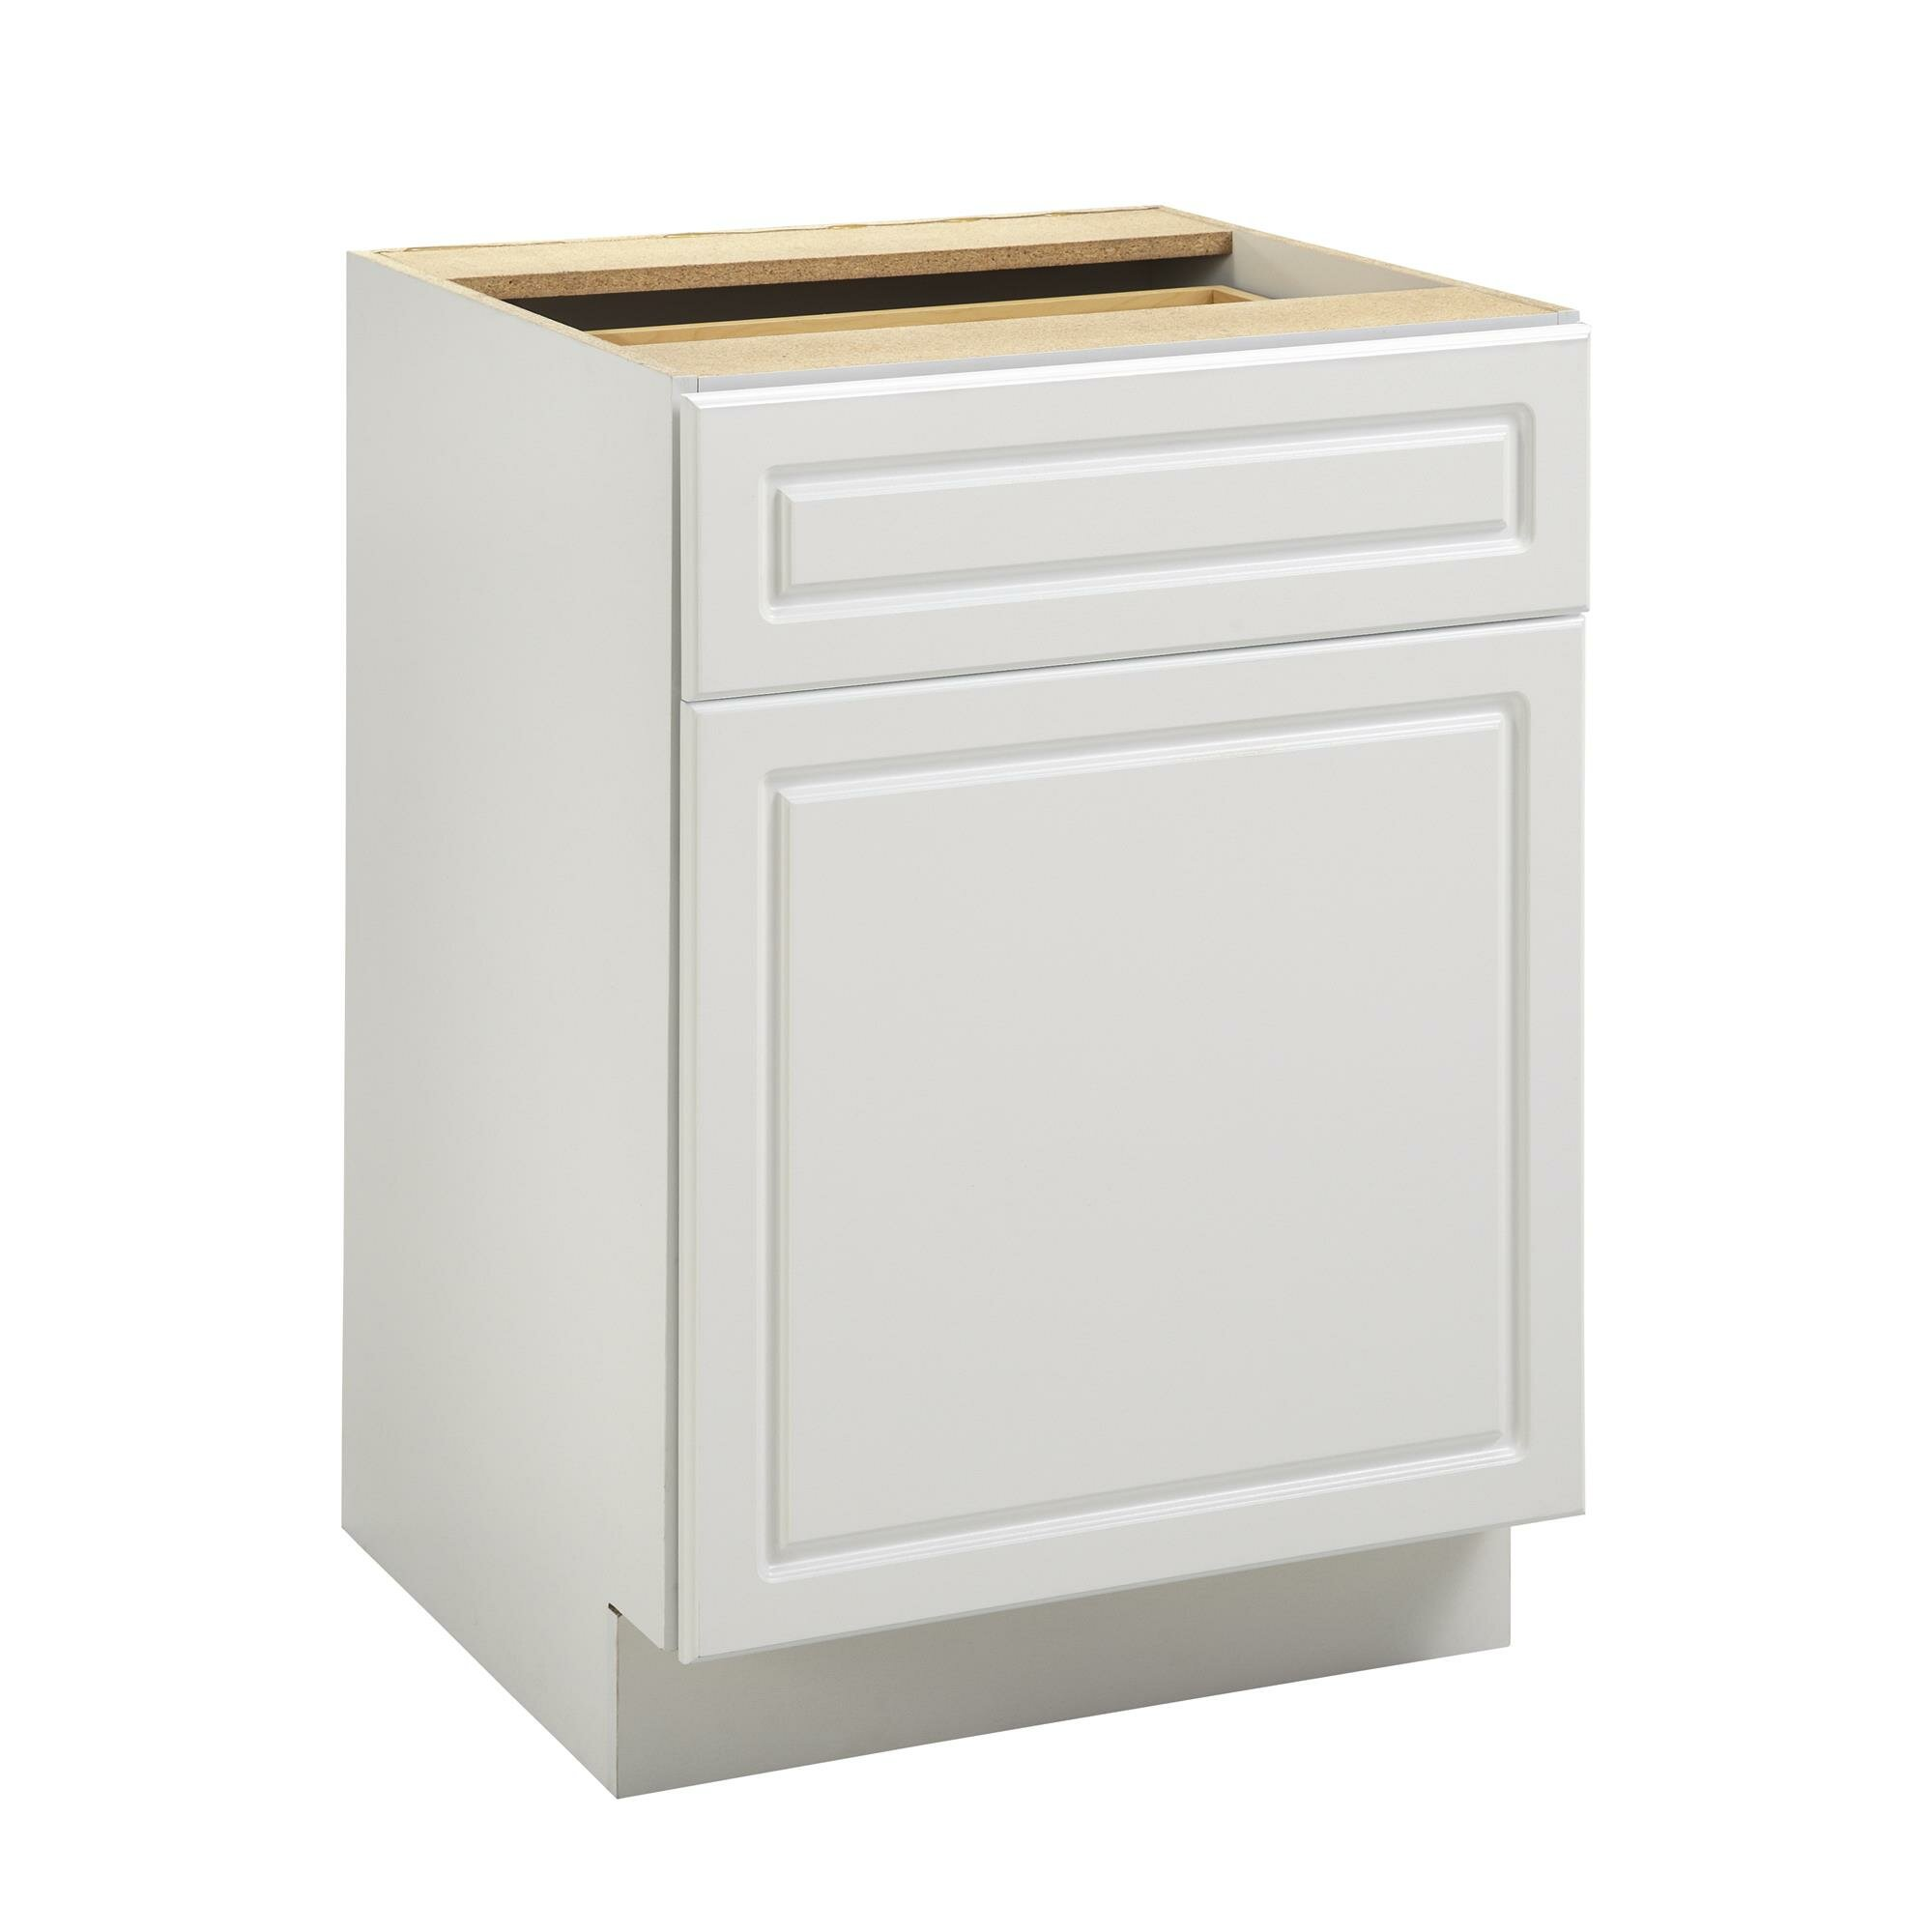 Altra keystone 24 1 drawer door base cabinet reviews for One day doors and closets reviews